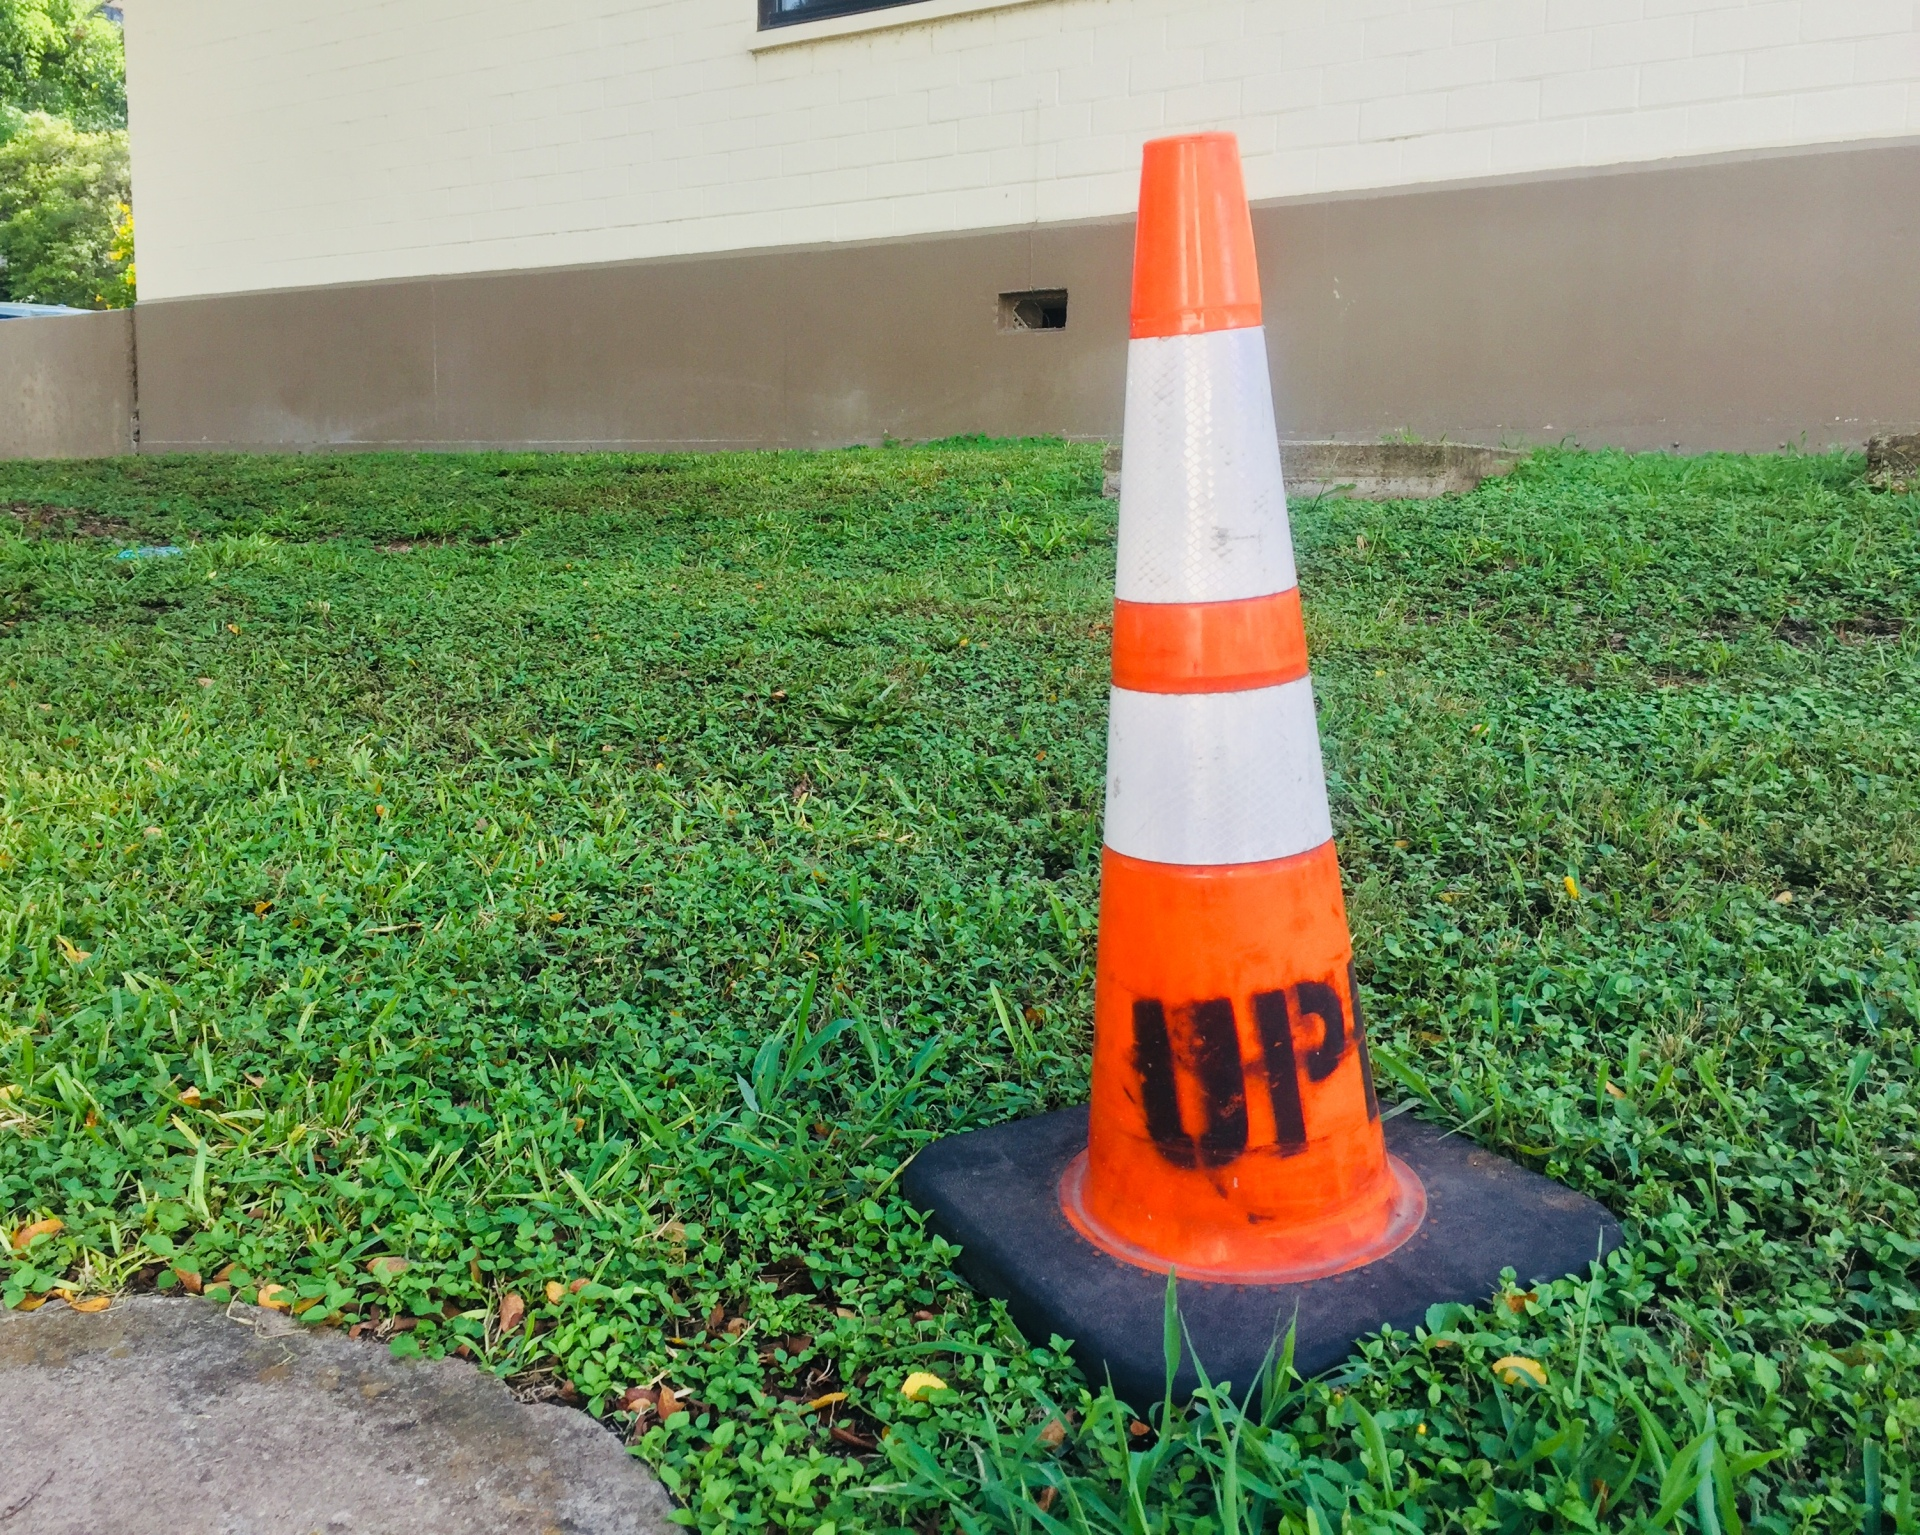 Cone in the grass